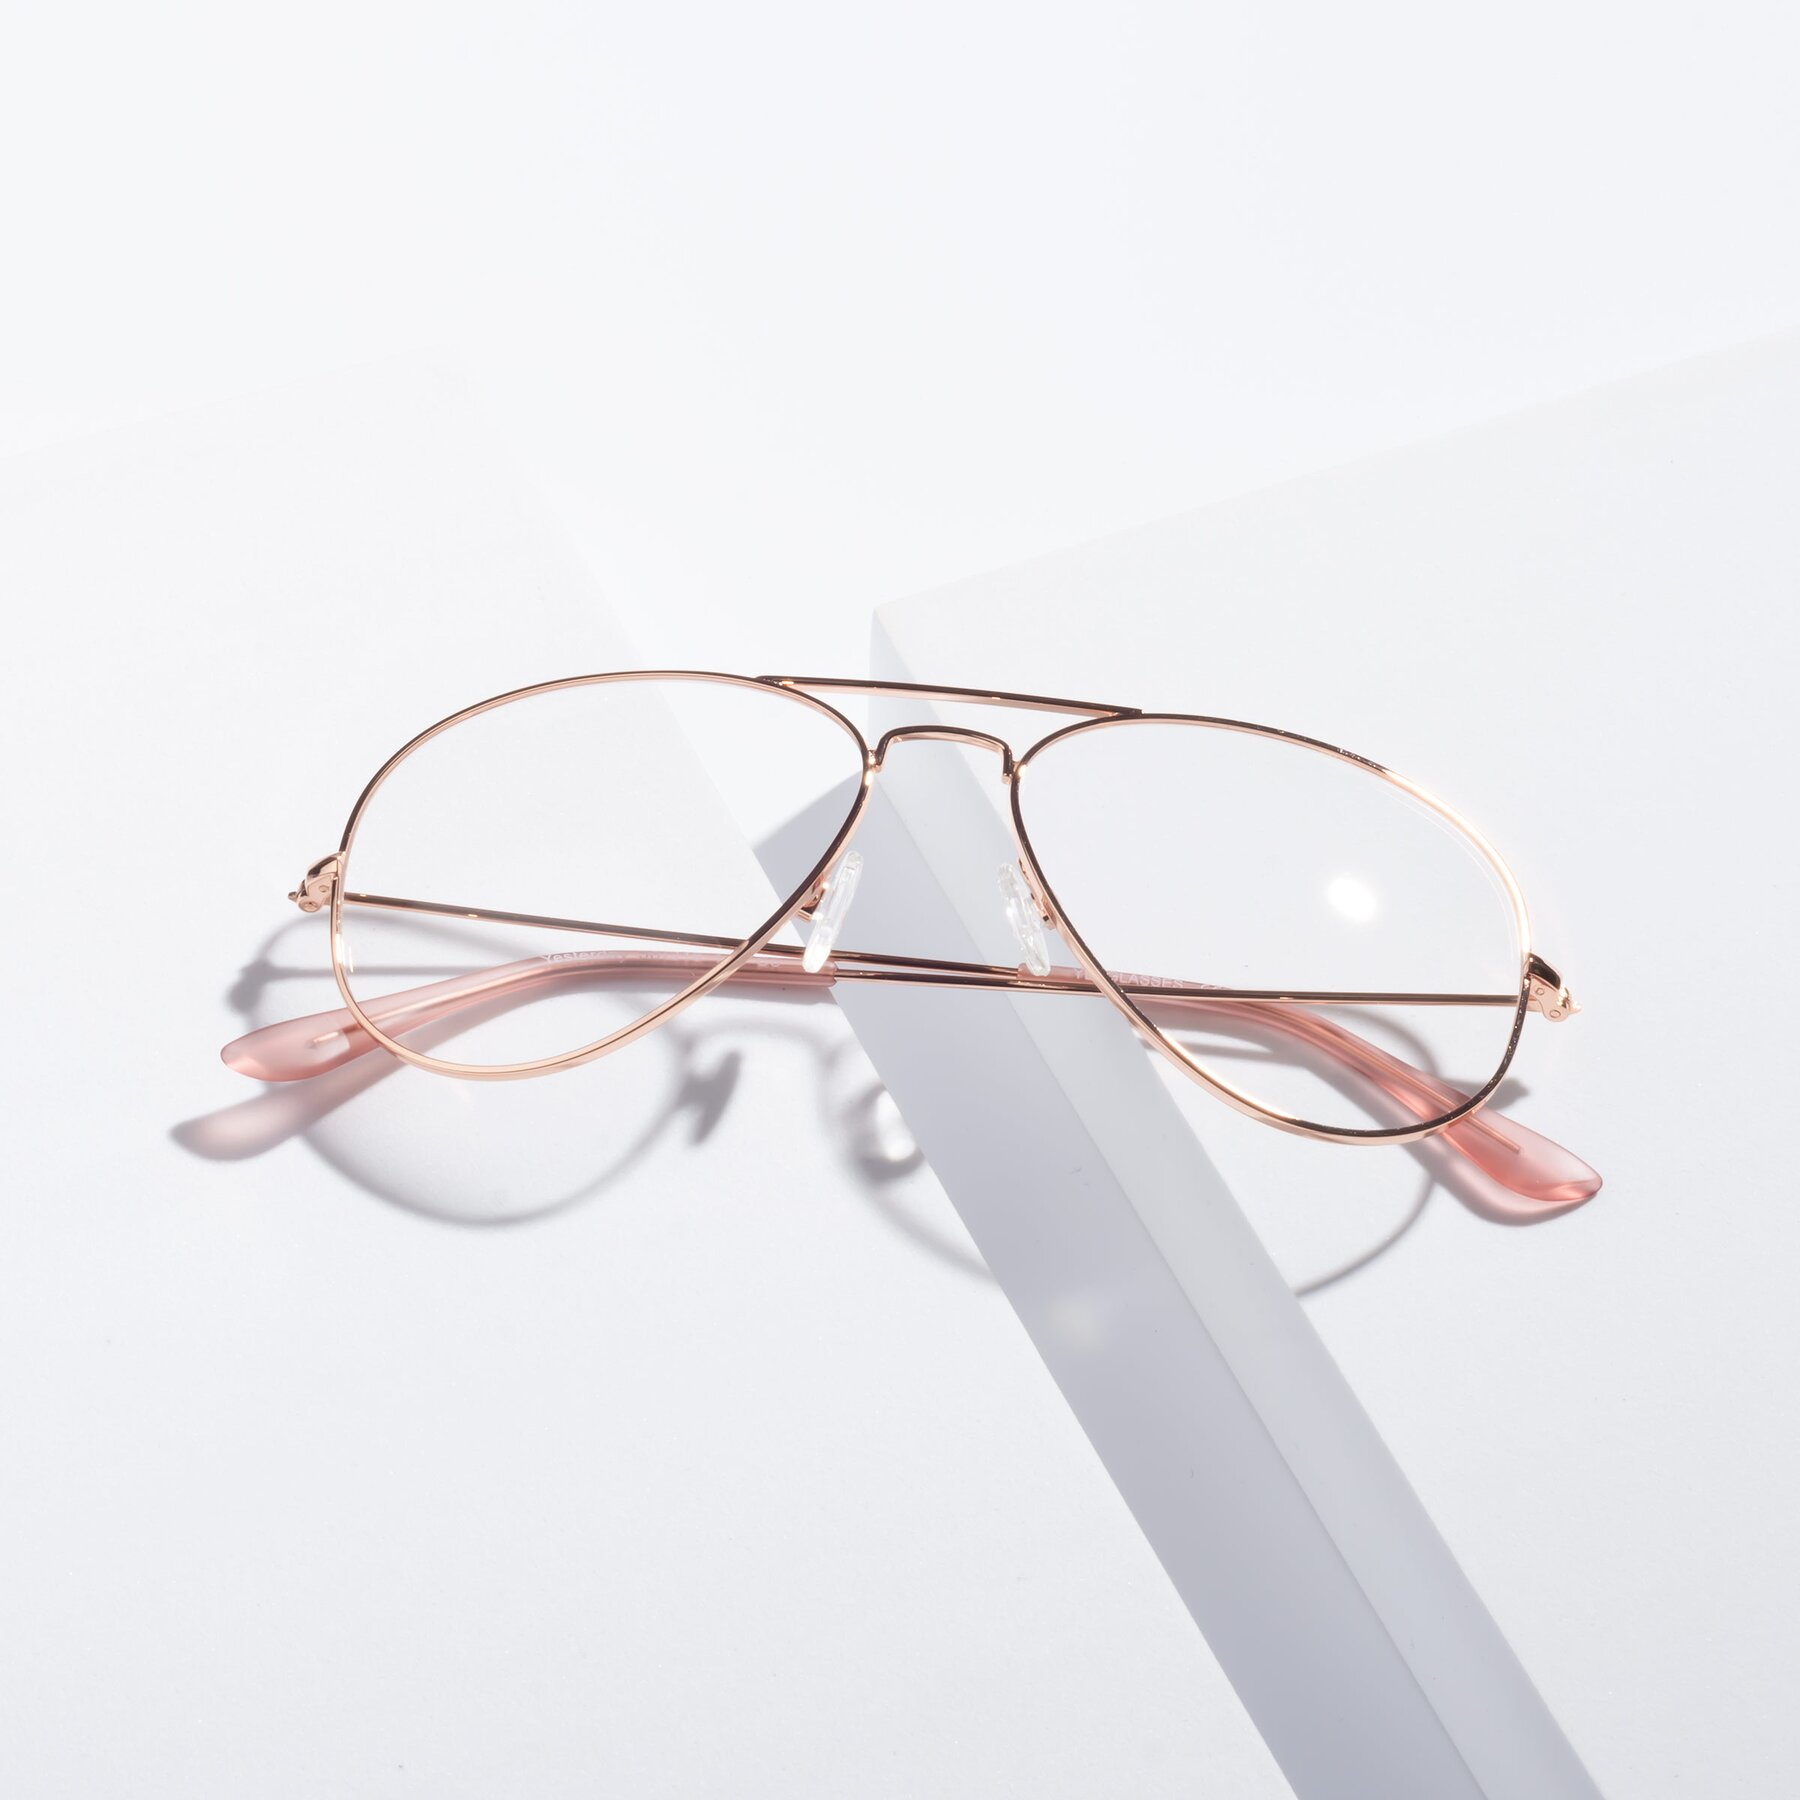 Lifestyle photography #1 of SSR035 in Rose Gold with Clear Eyeglass Lenses